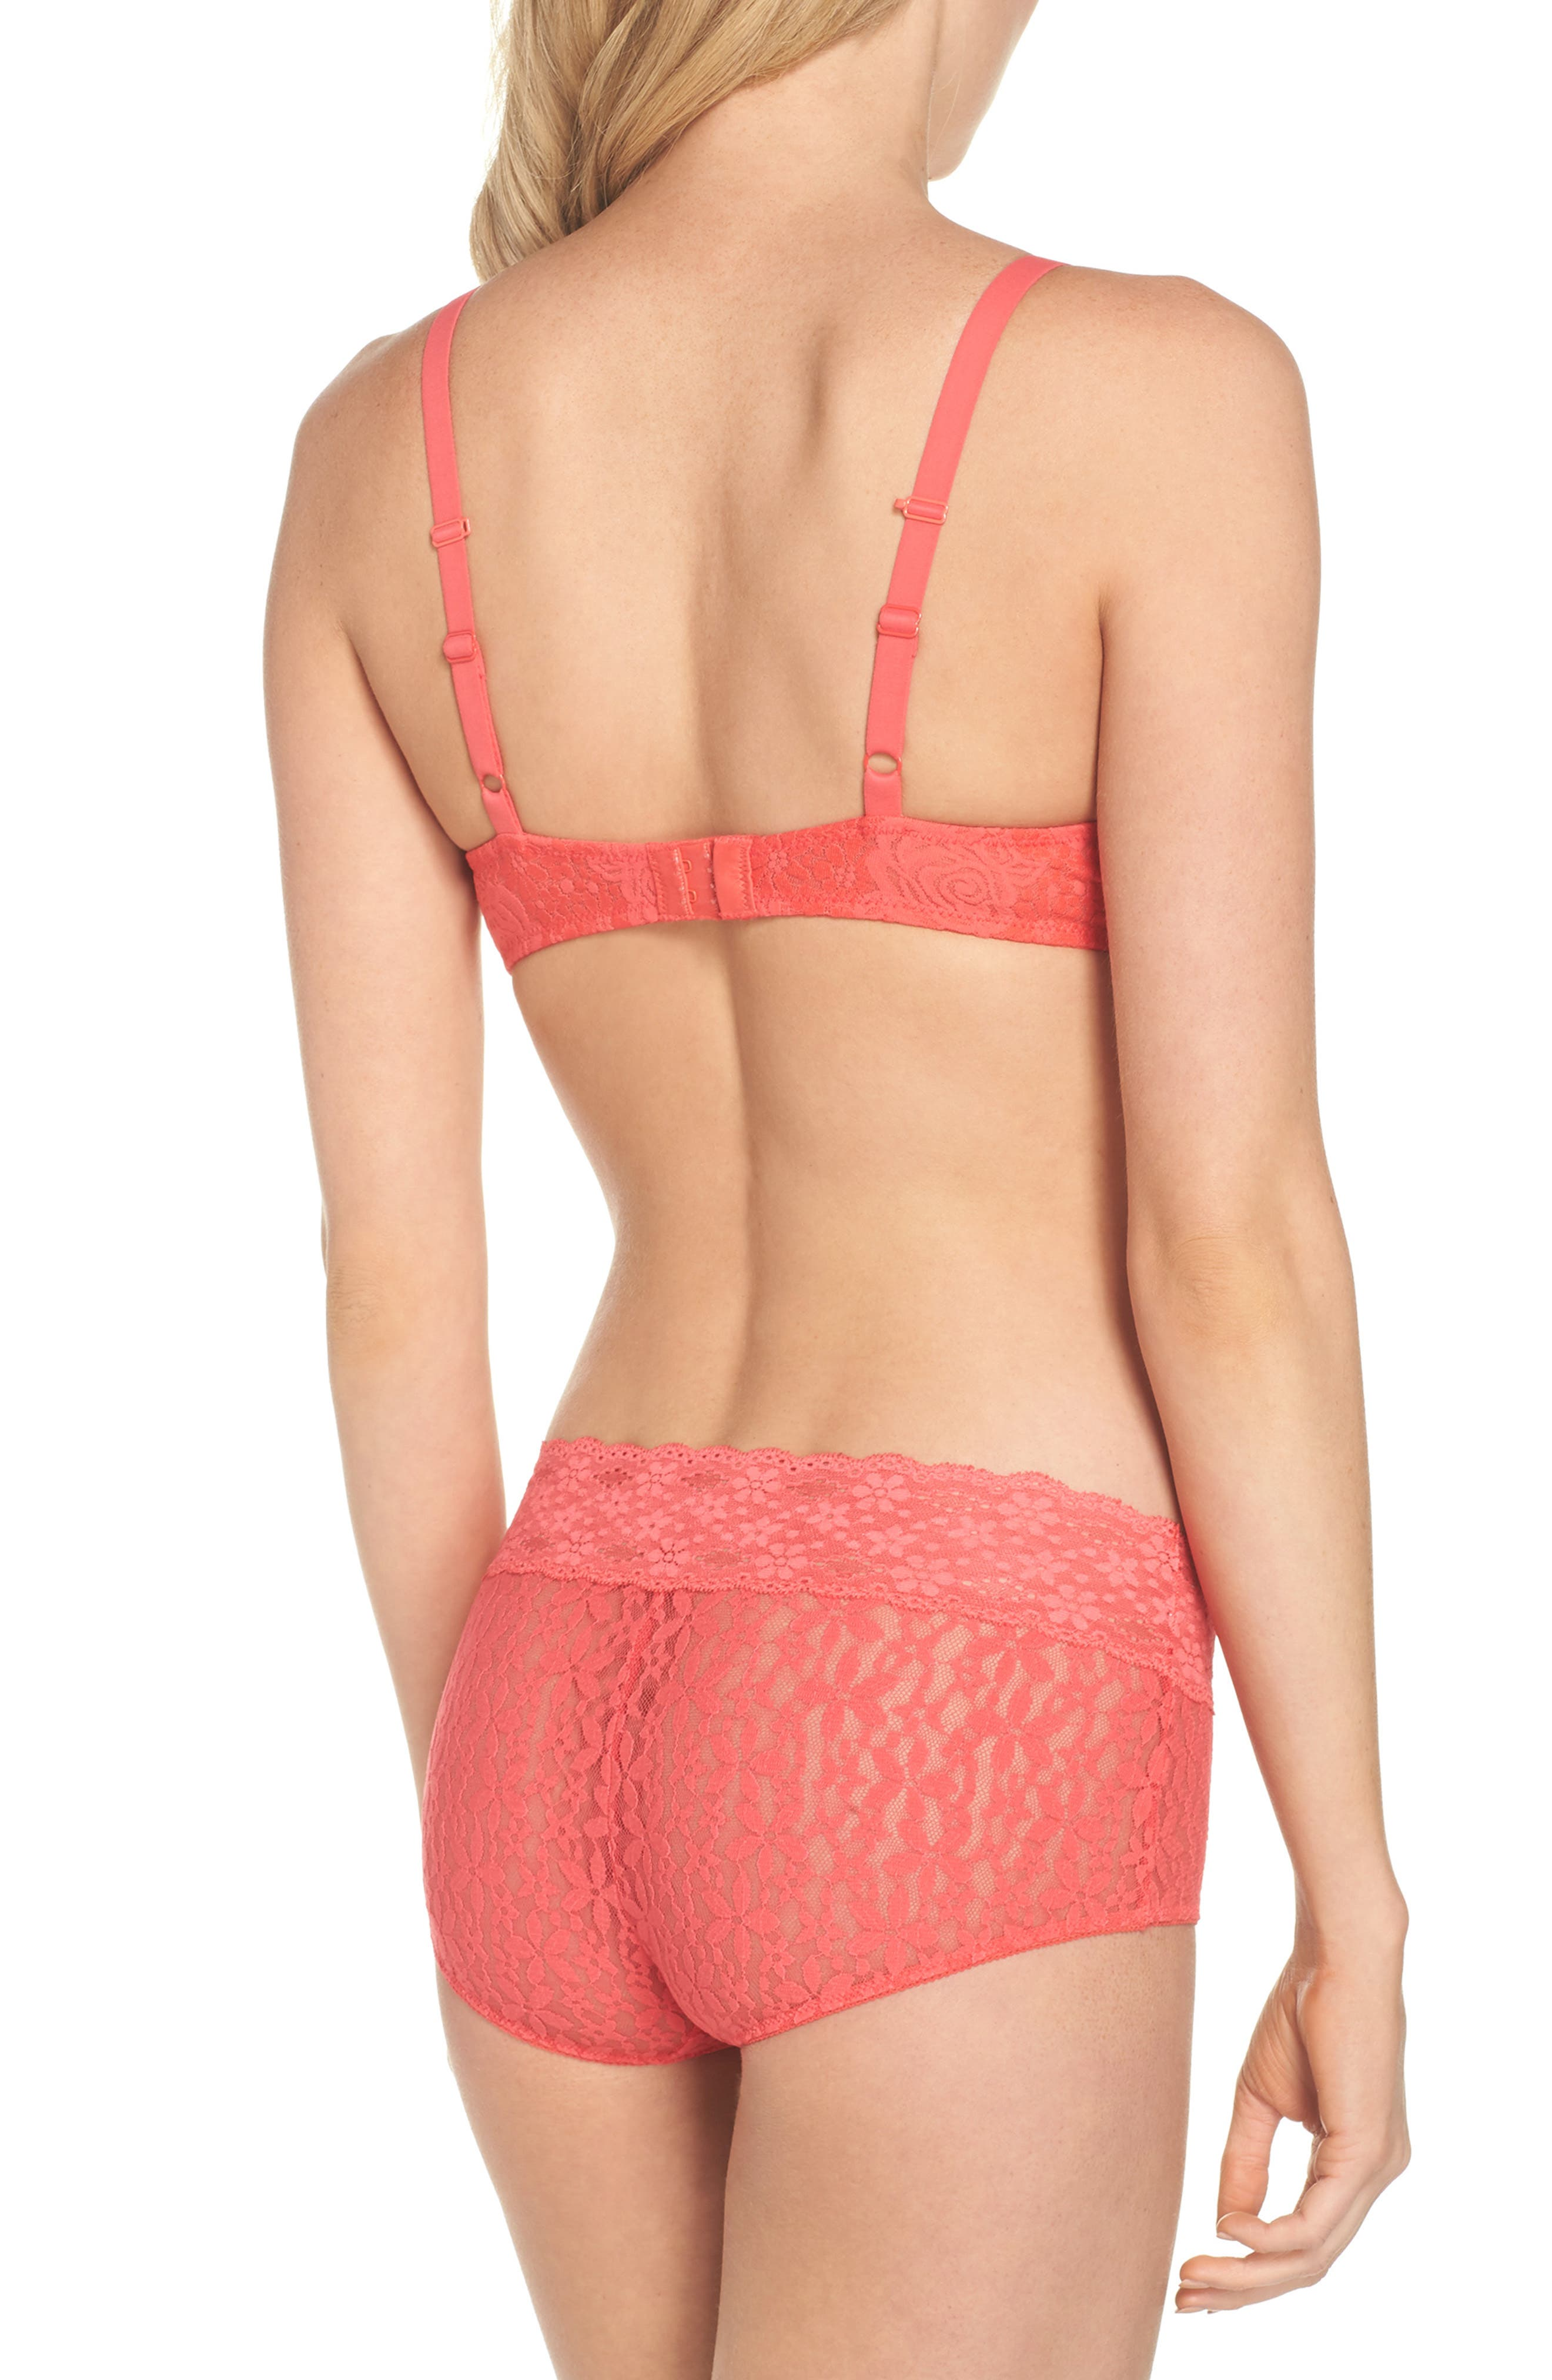 'Halo Lace' Convertible Underwire Bra,                             Alternate thumbnail 6, color,                             Hibiscus